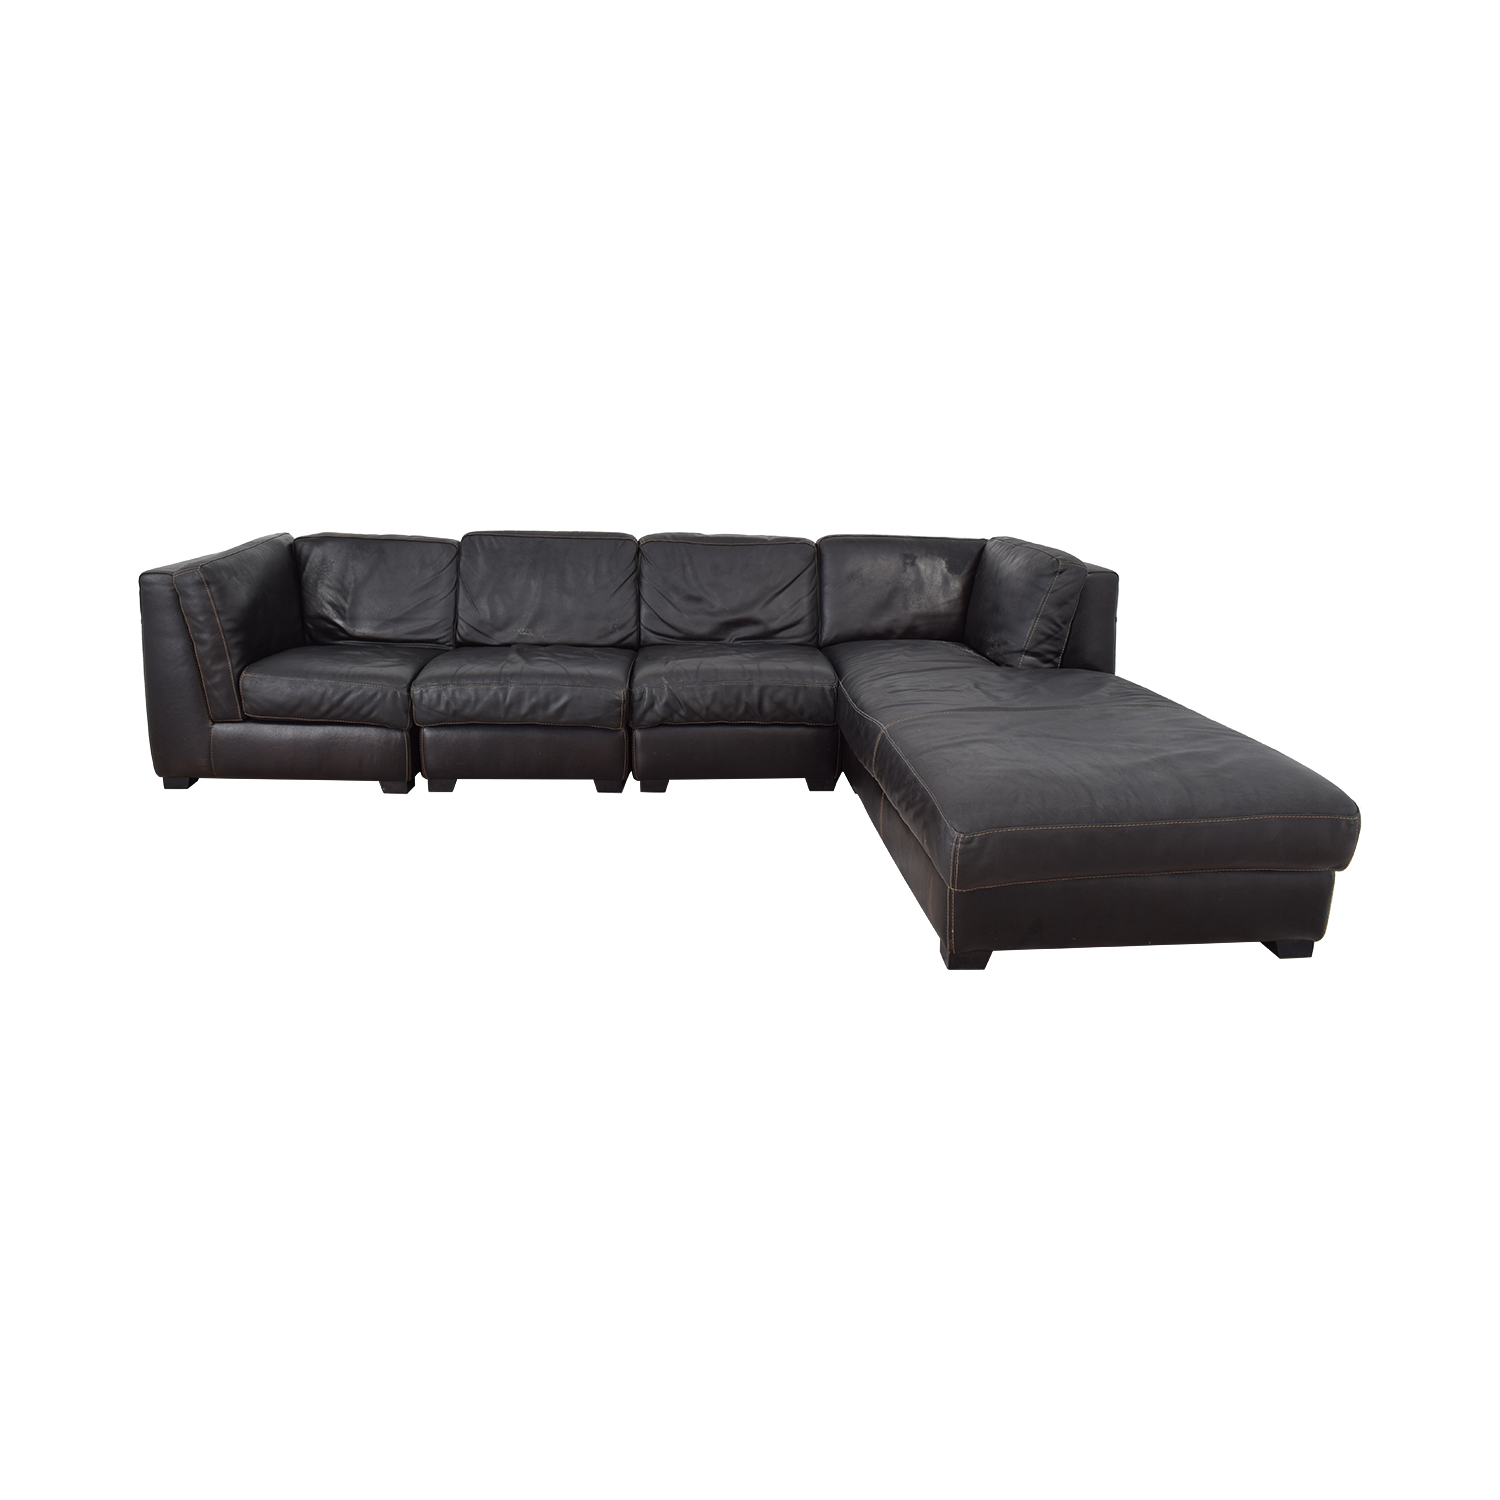 buy ABC Carpet & Home ABC Carpet & Home CRETA Leather Sectional Sofa online